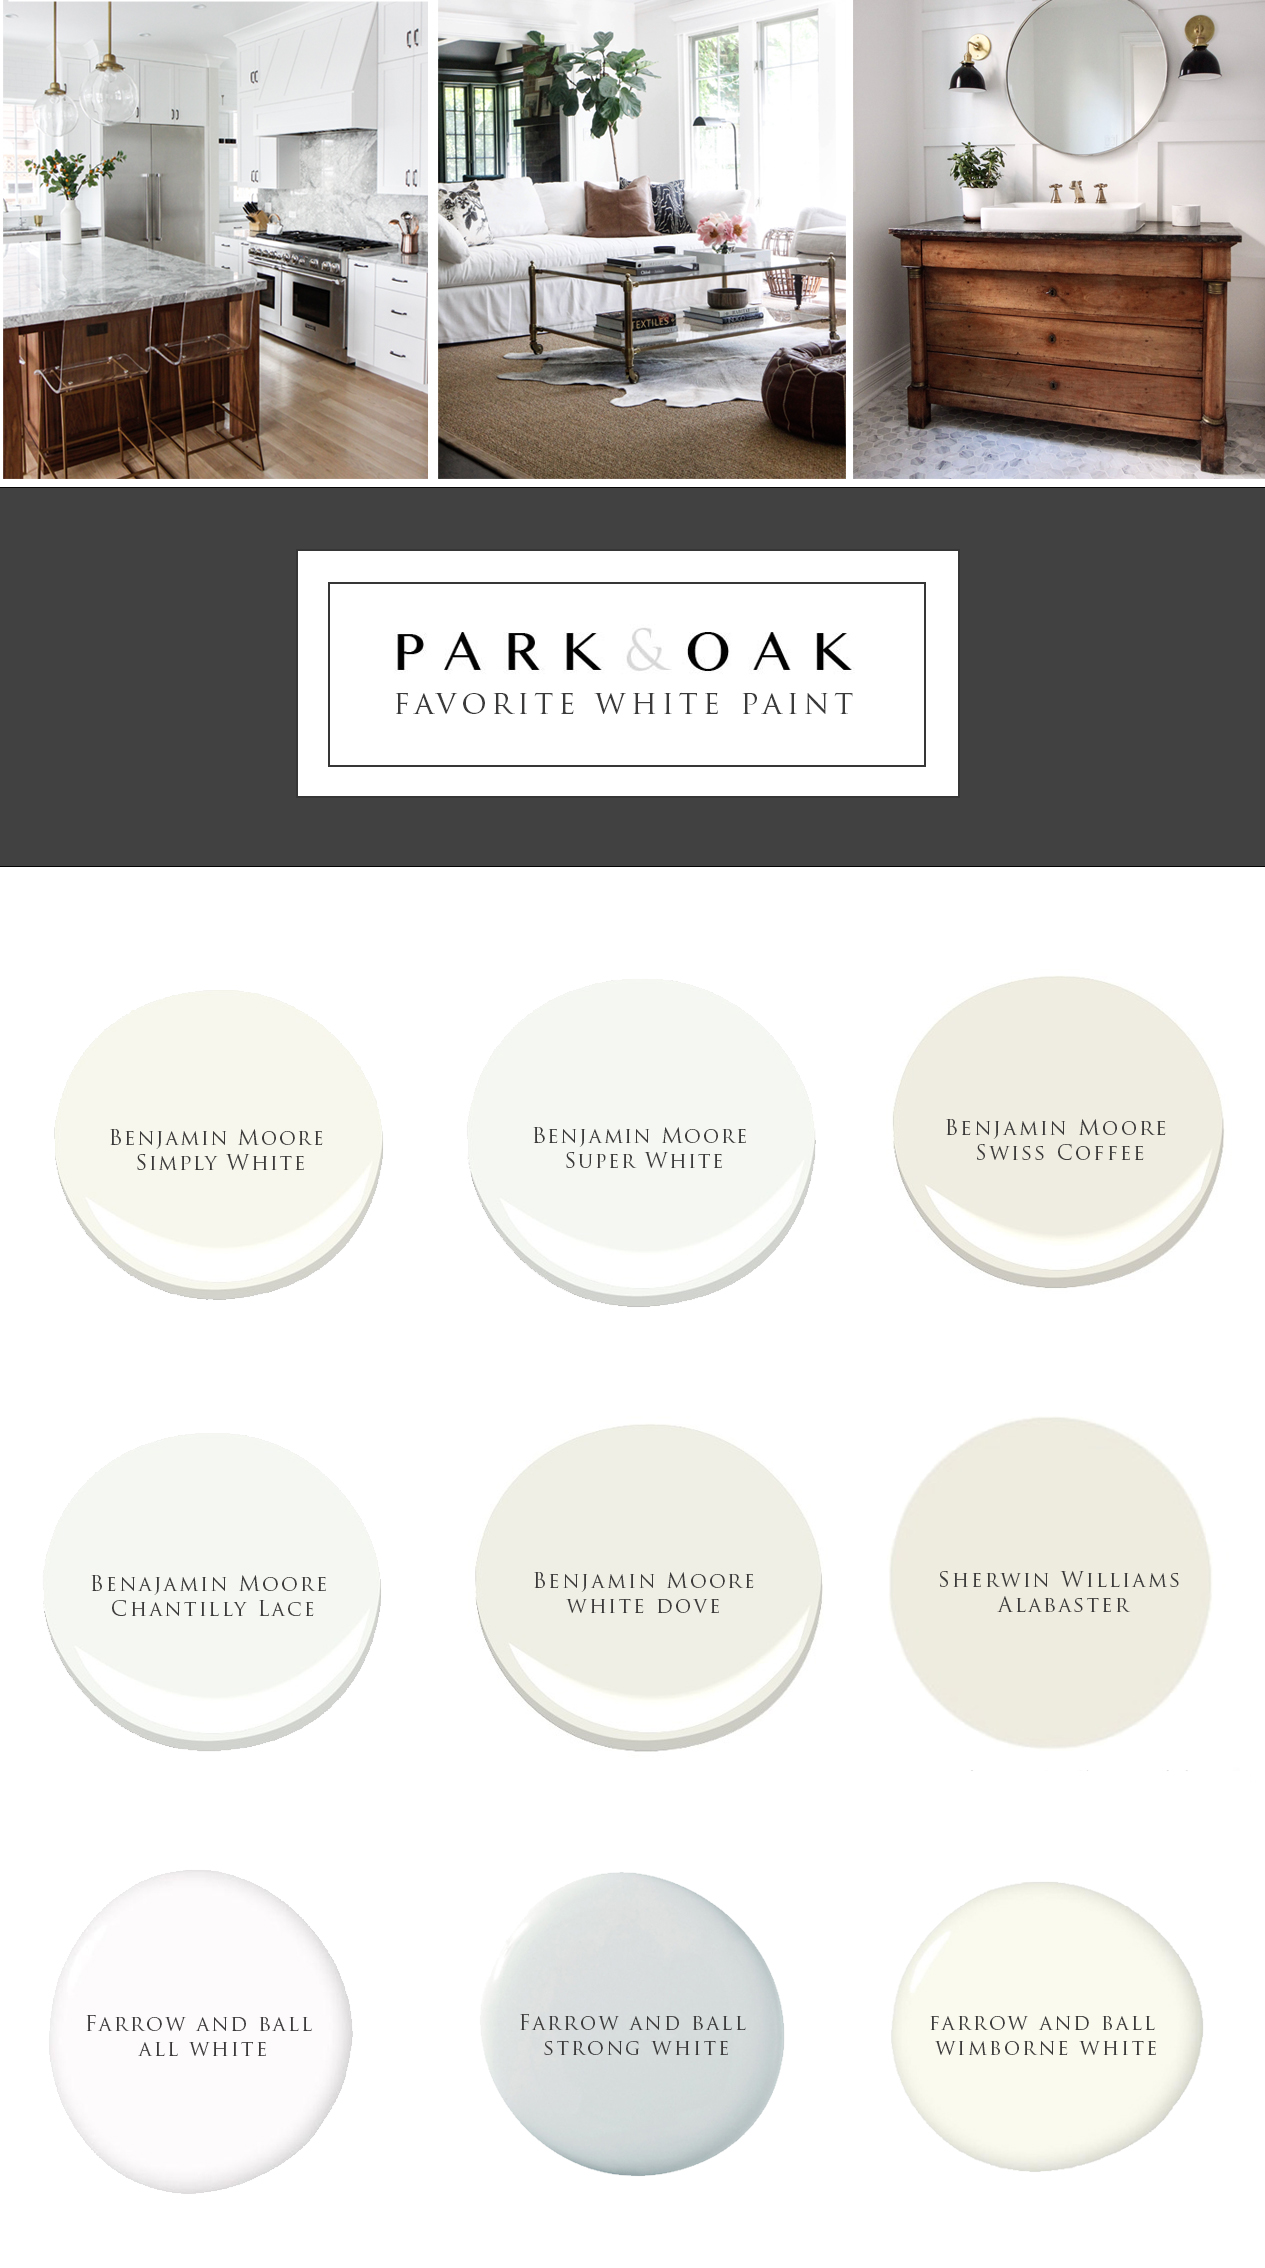 Benjamin Moore White Dove Kitchen Cabinets The Right White Park And Oak Interior Design